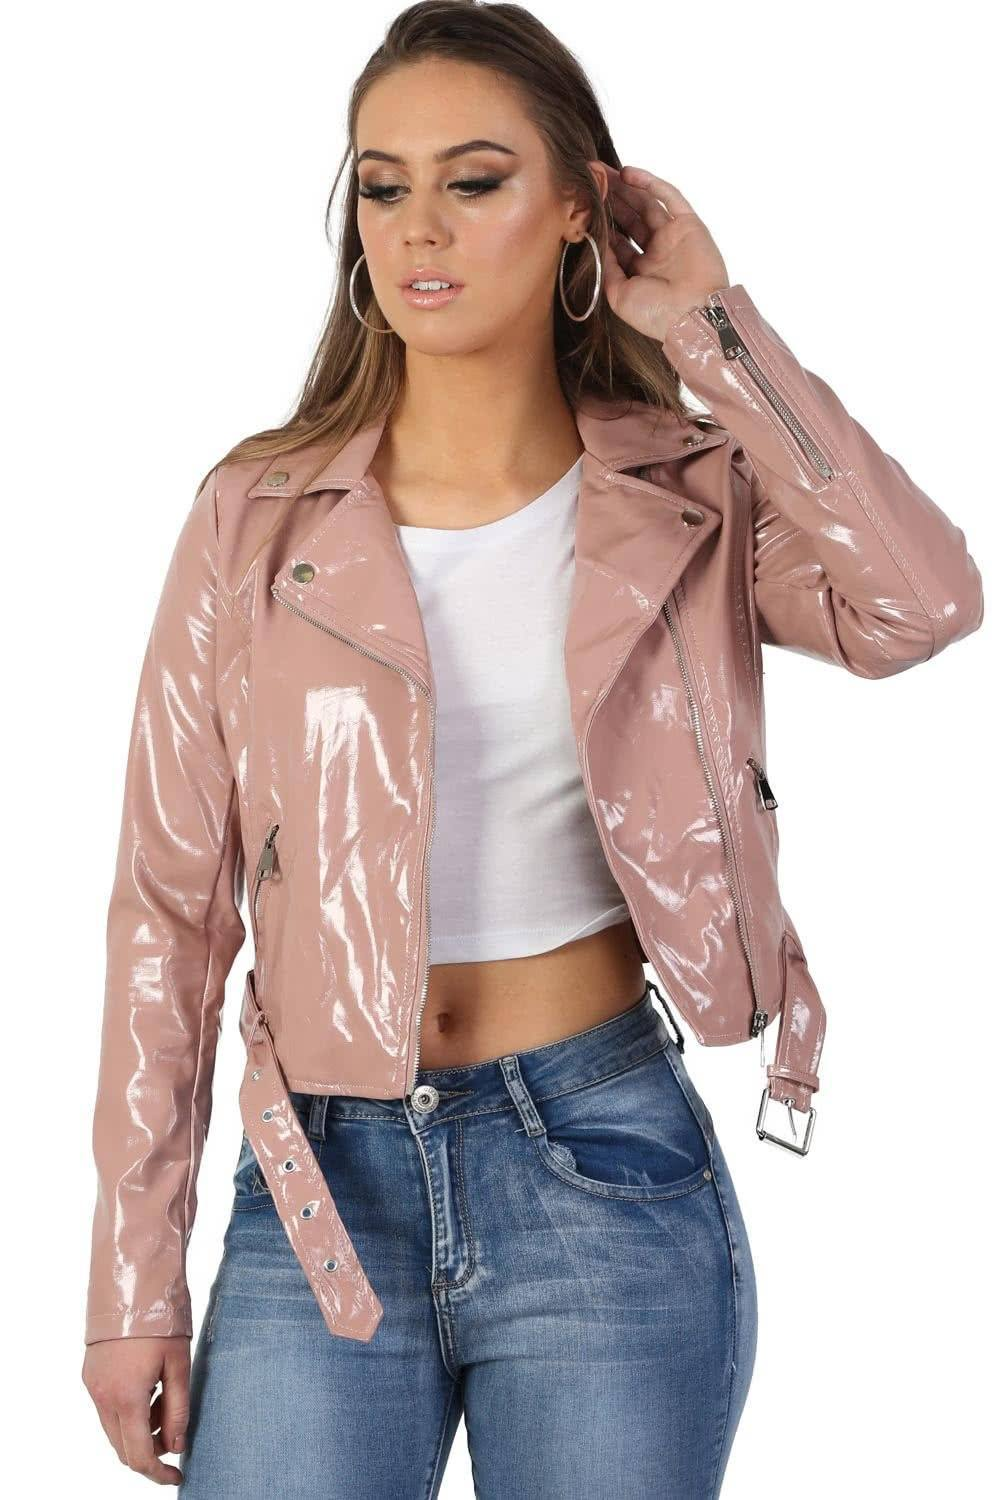 Patent Belted Biker Jacket in Dusty Pink 0